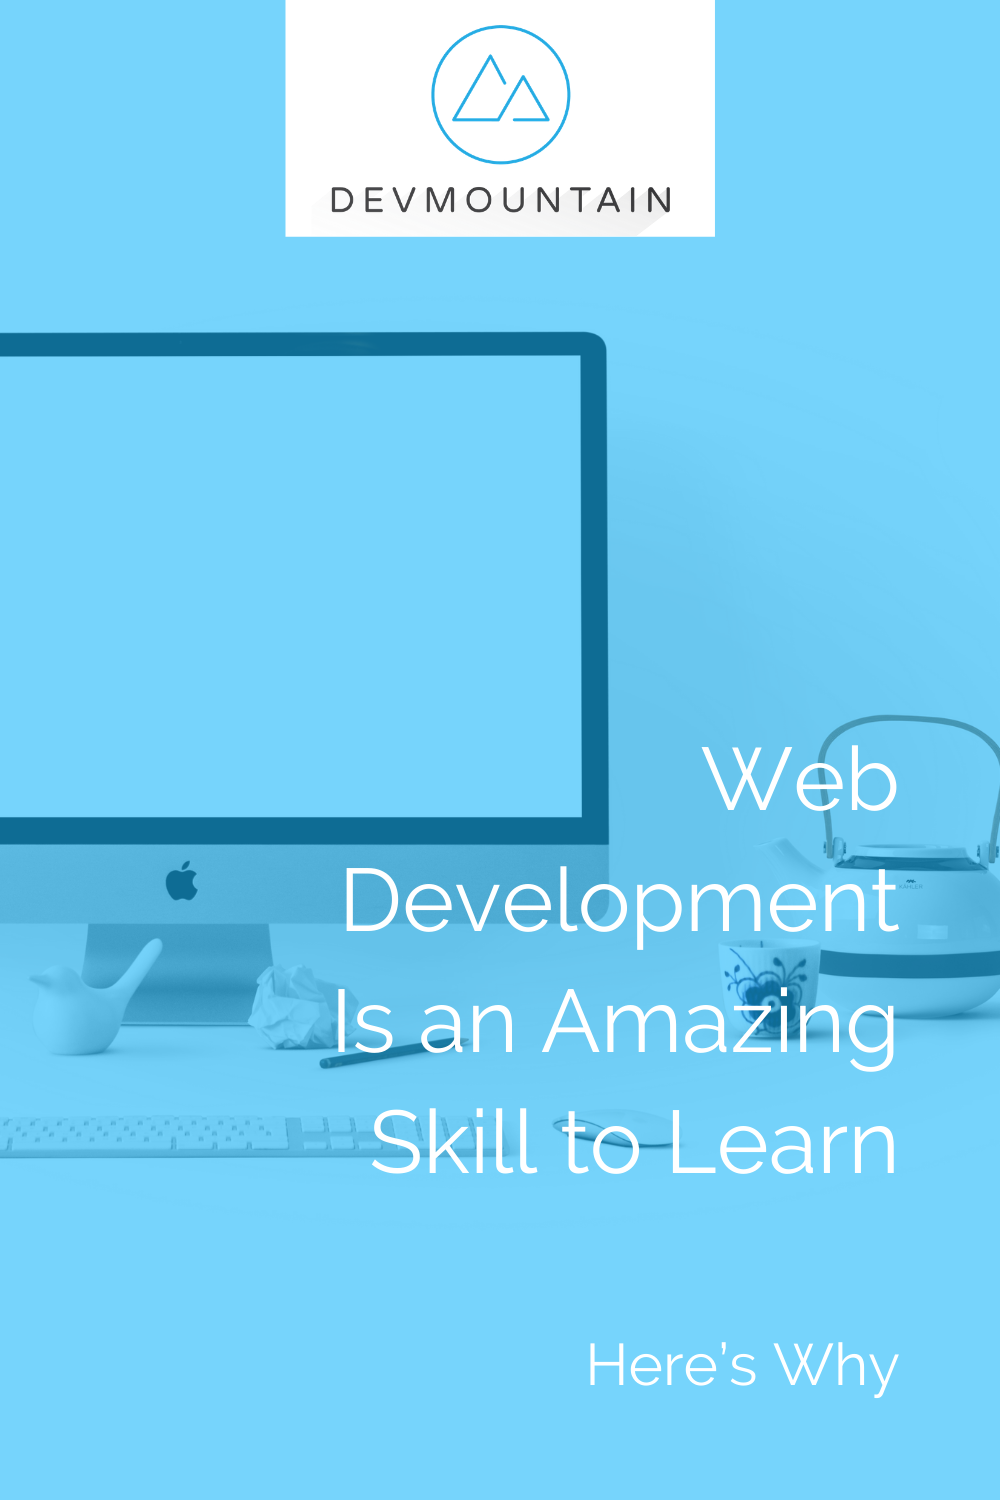 Web Development Is an Amazing Skill to Learn, Here's Why